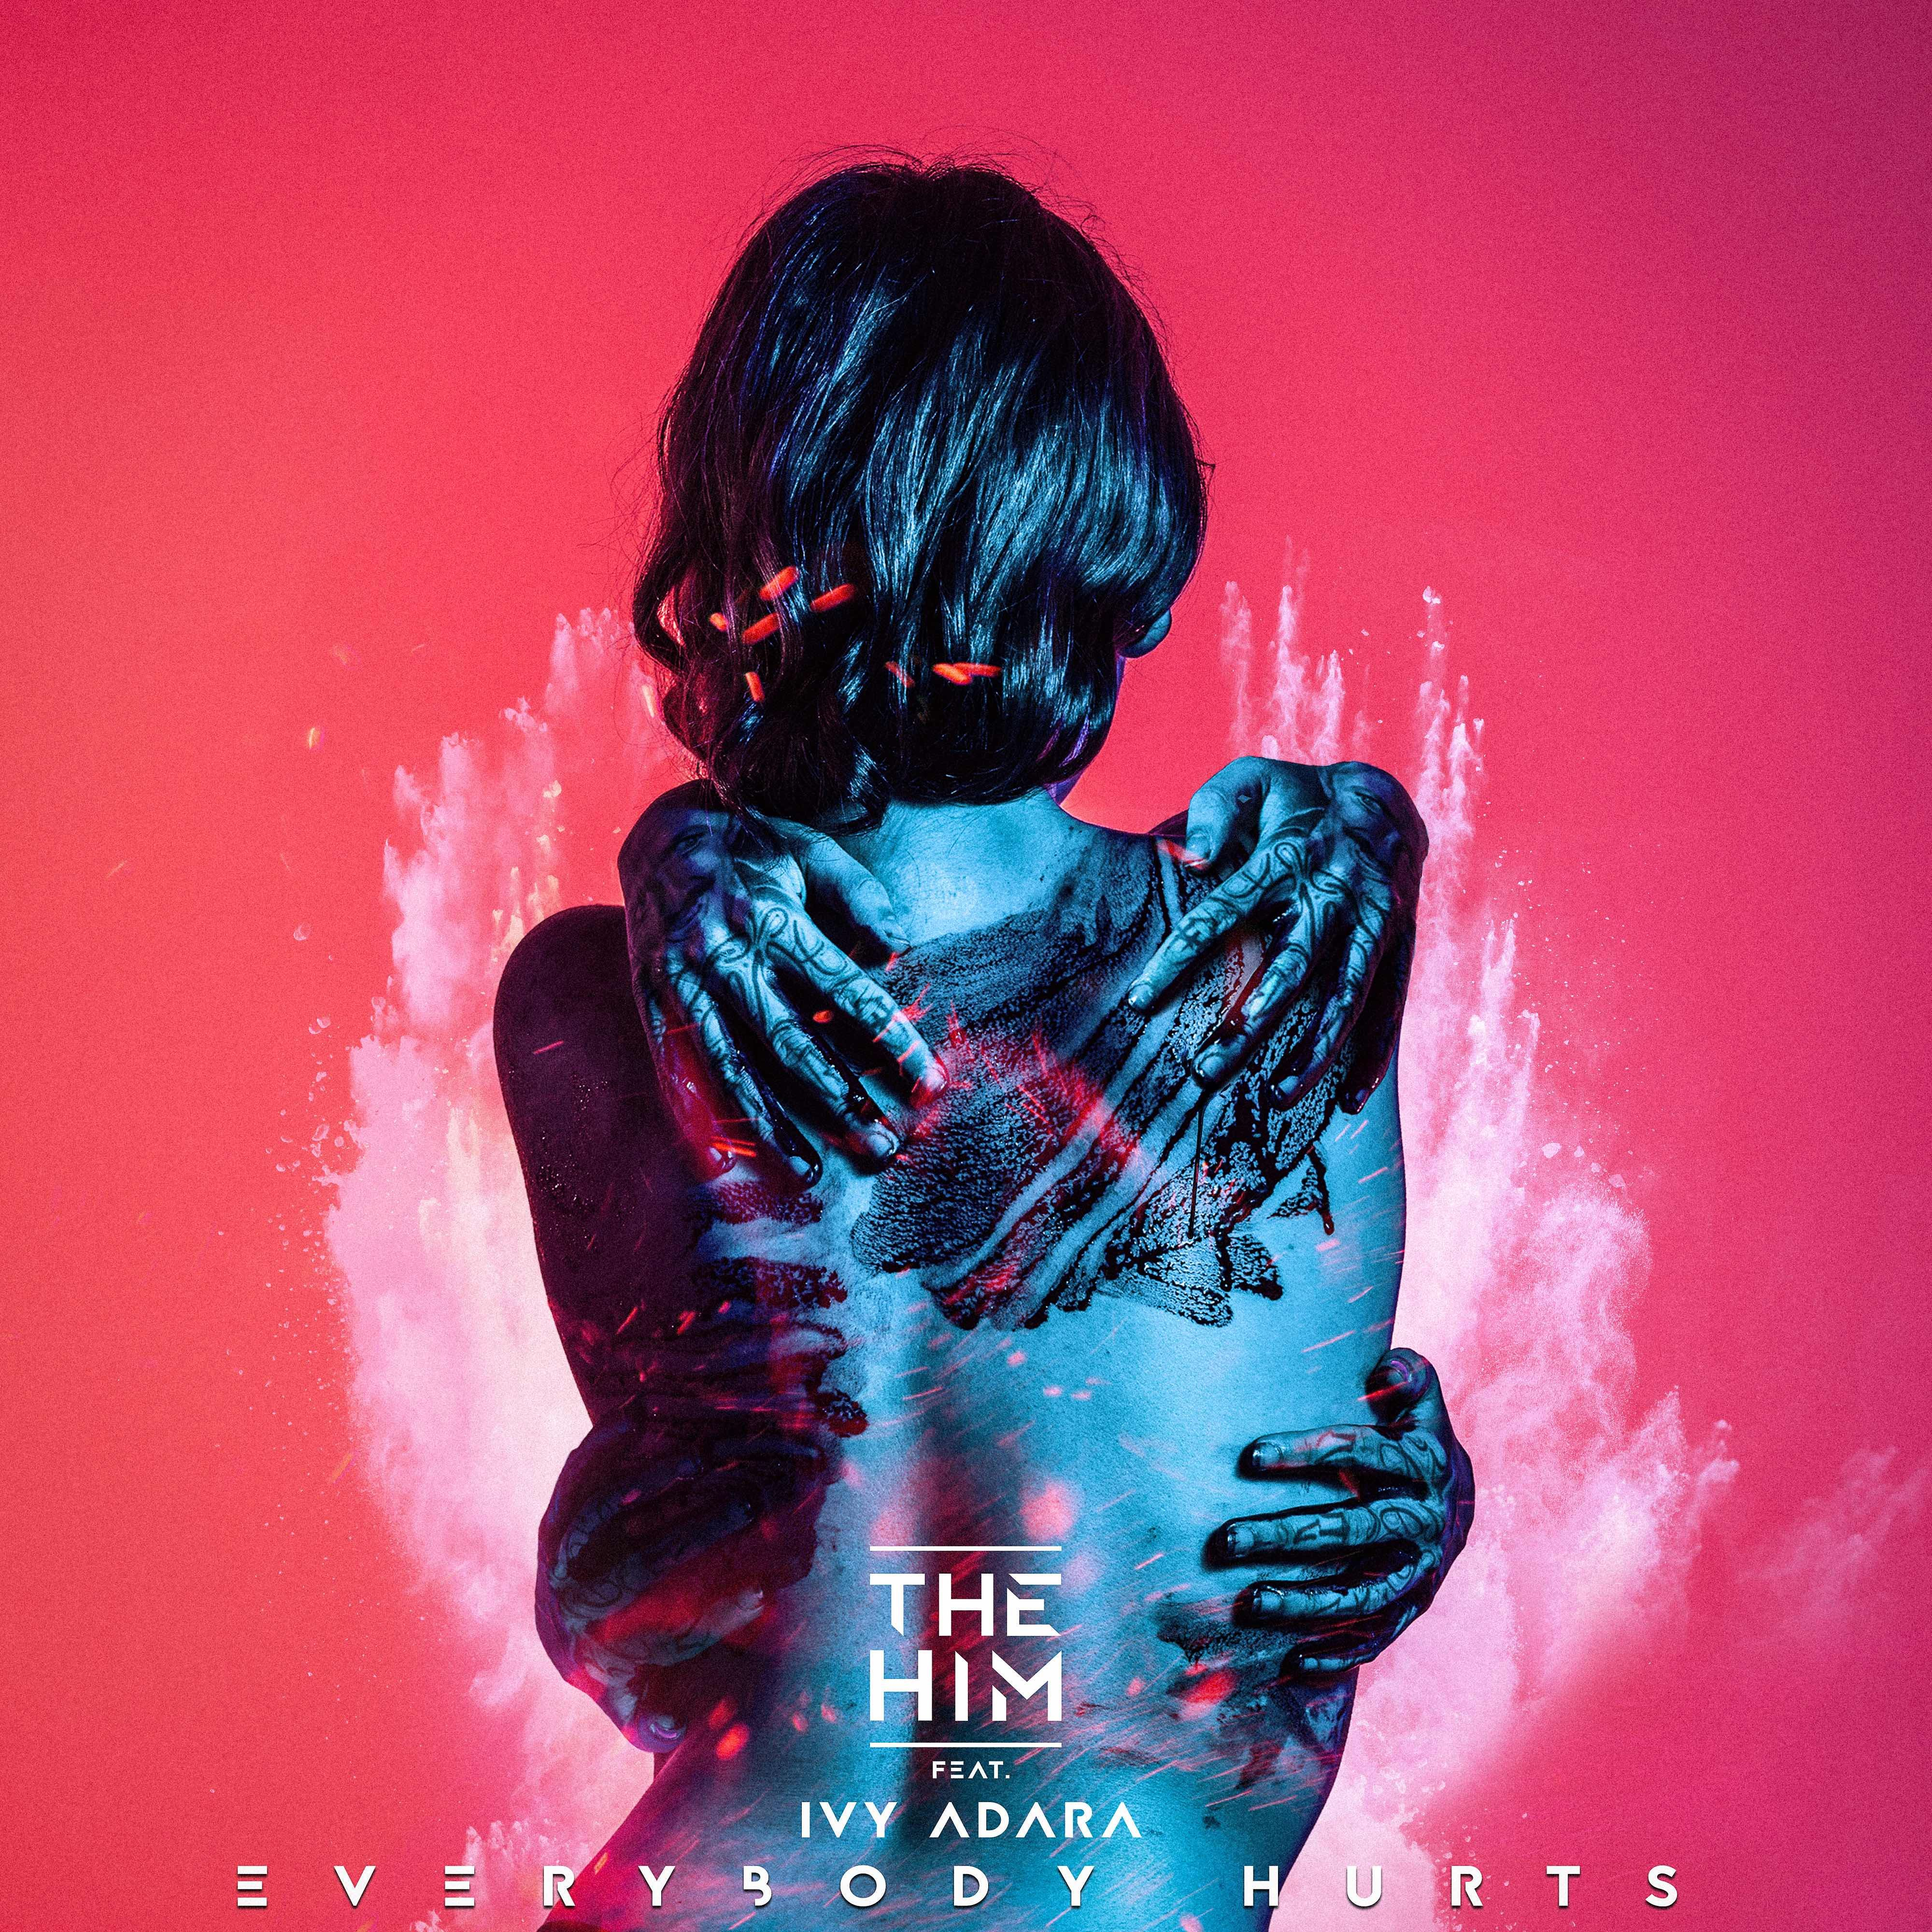 The Him Ft Ivy Adara - Everybody Hurts